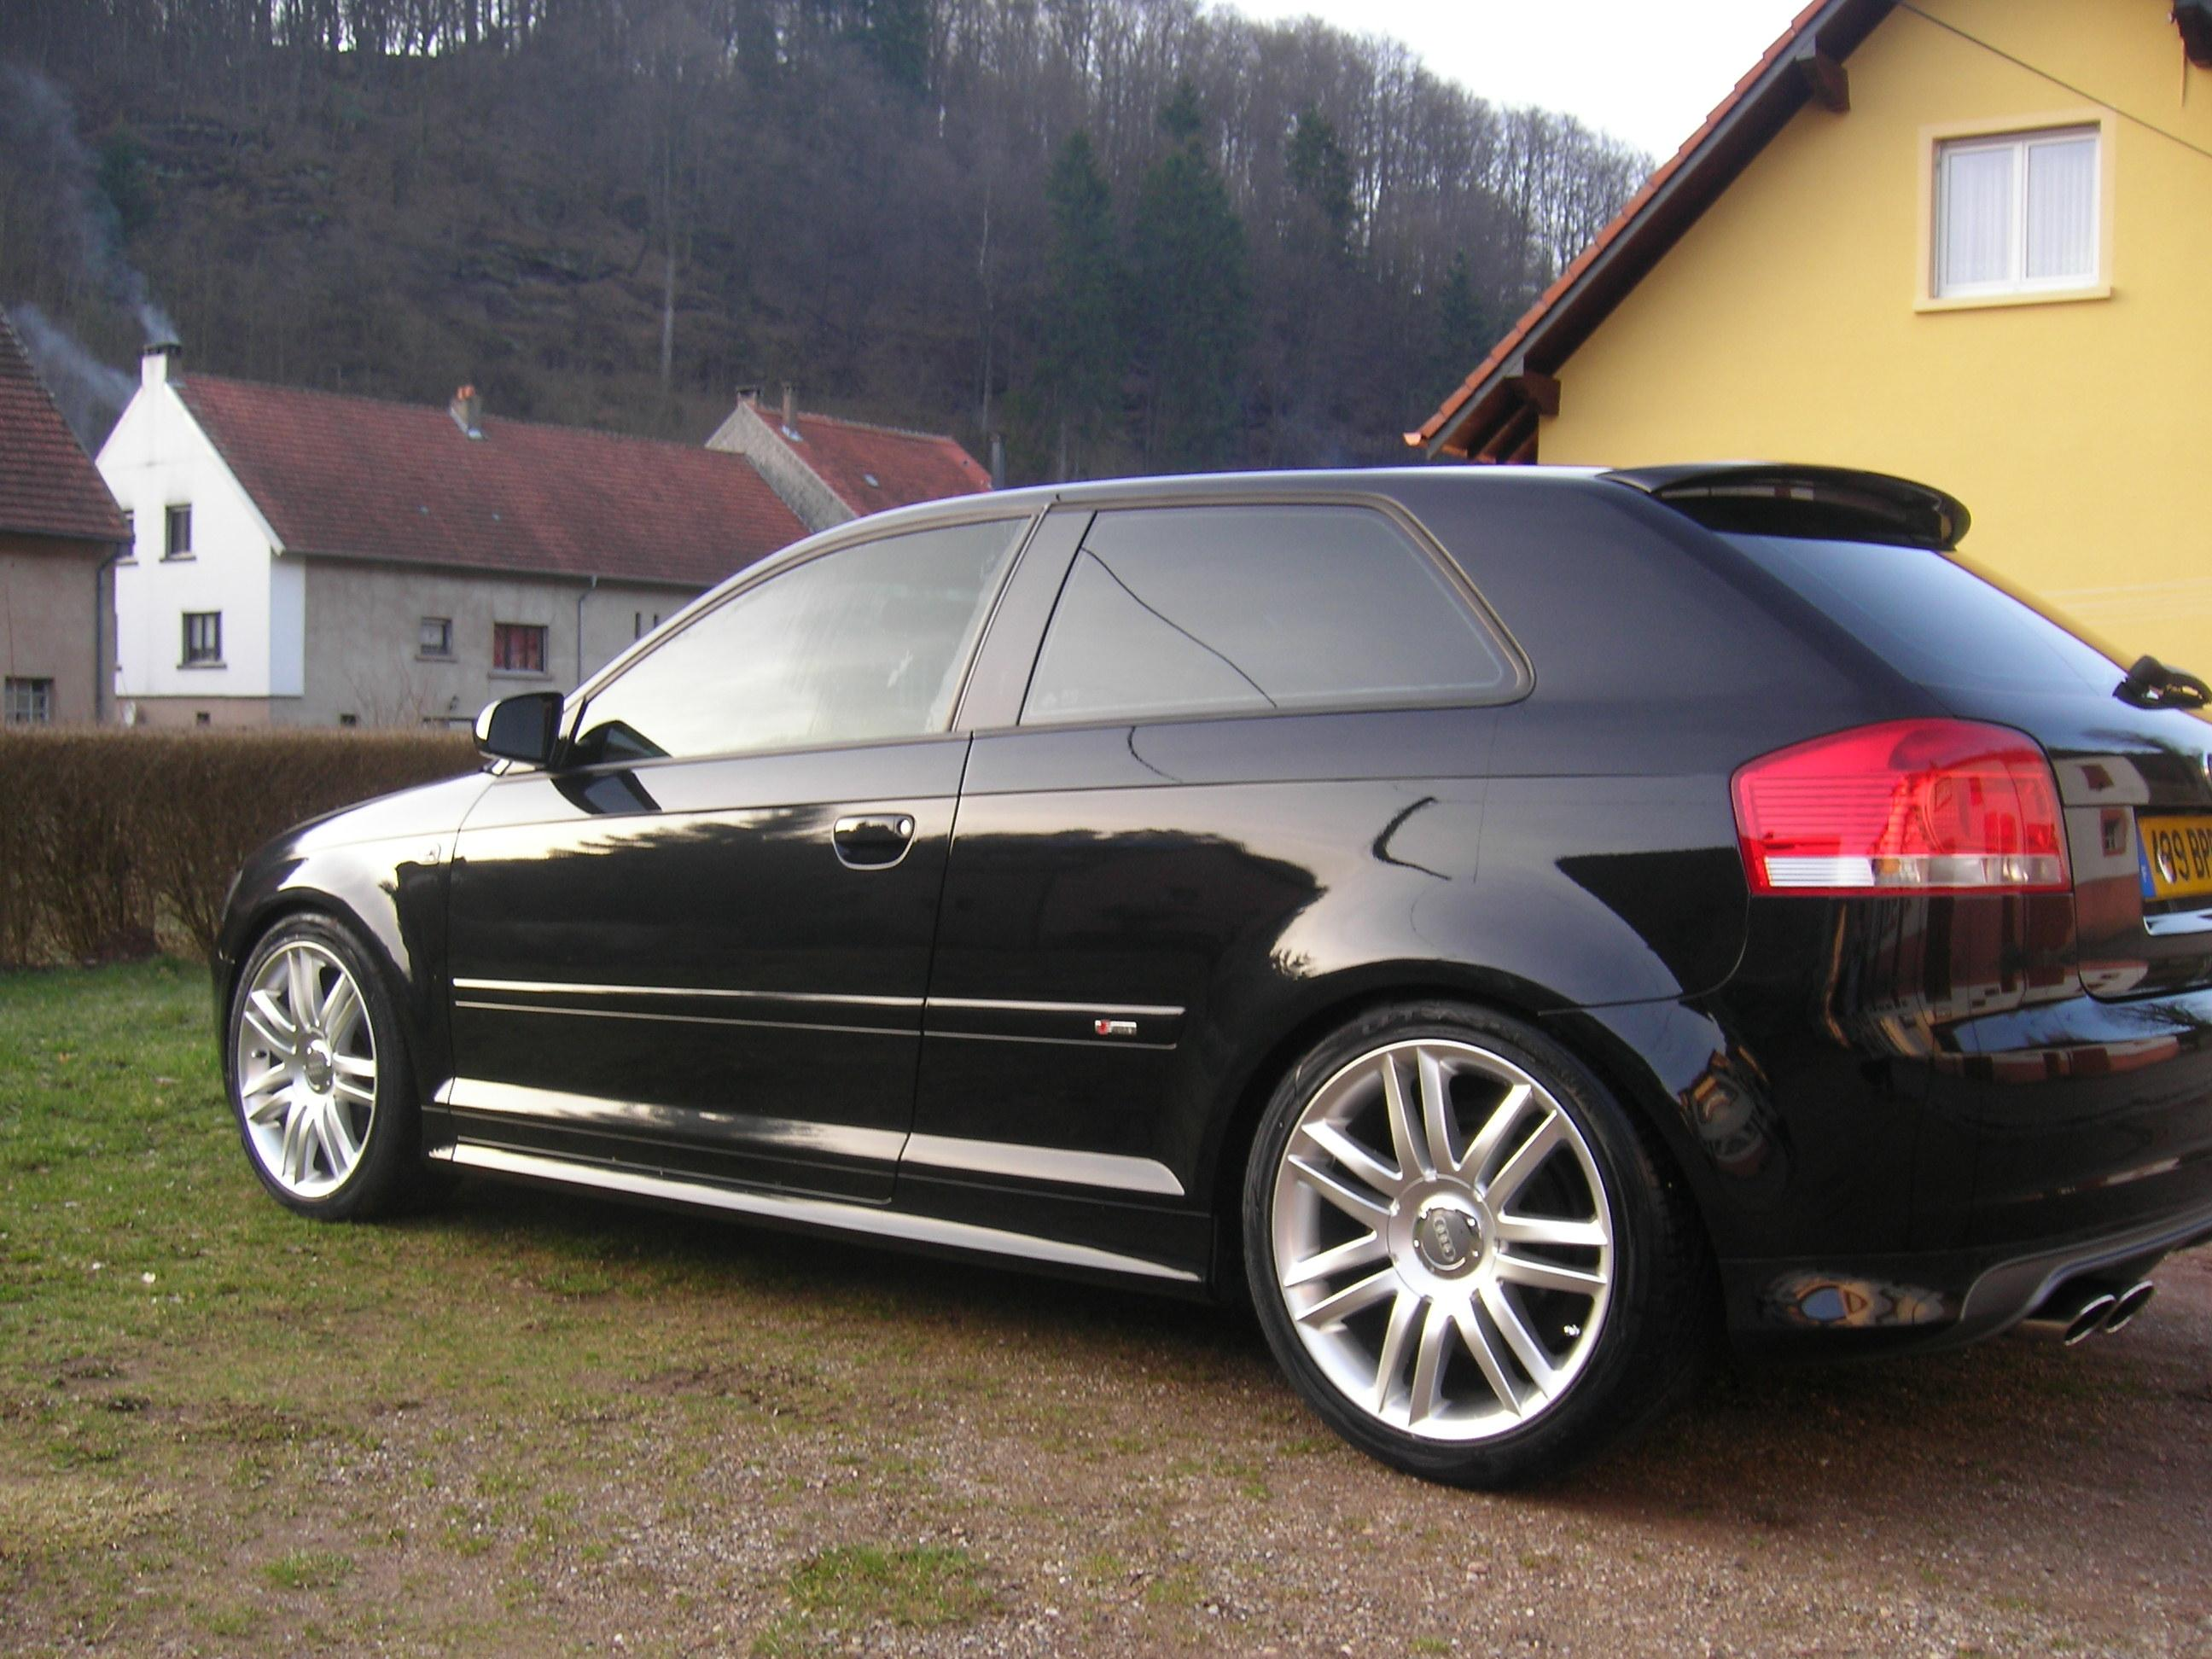 rabaissement pour a3 sportback 170ch 2006 trains roulants forum audi a3 8p 8v. Black Bedroom Furniture Sets. Home Design Ideas